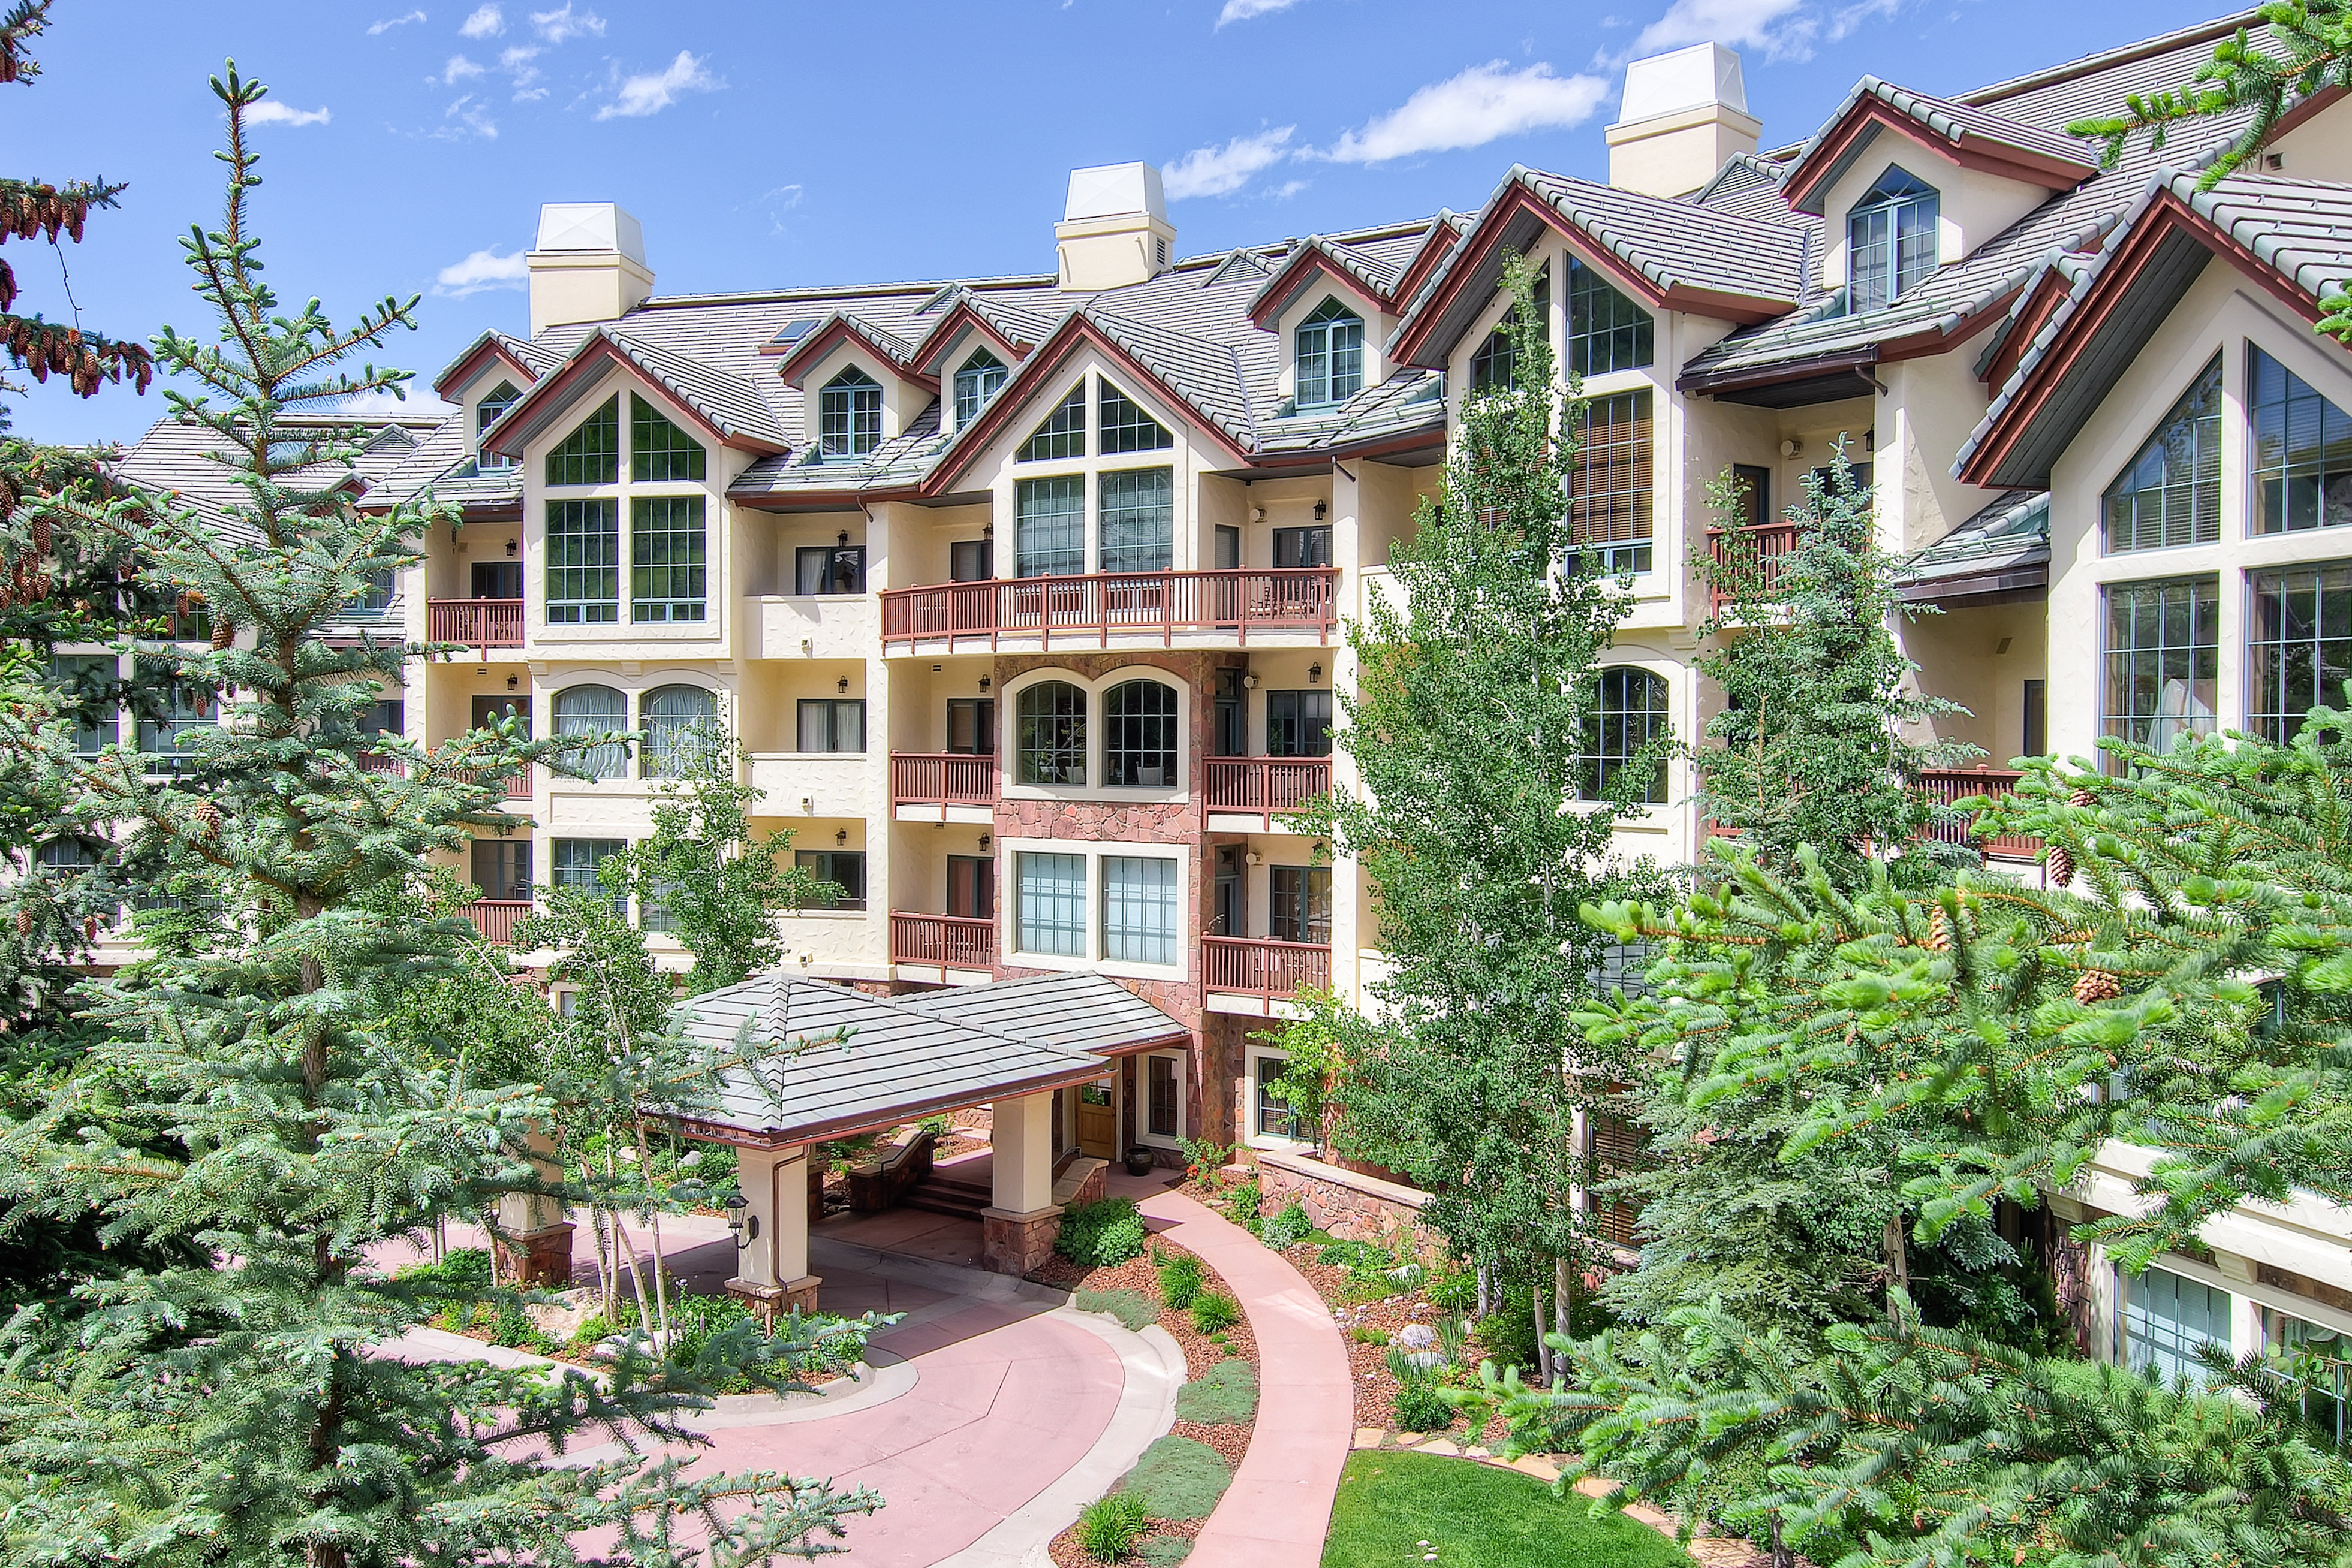 Multi-Level Condo in Beaver Creek with Special Details